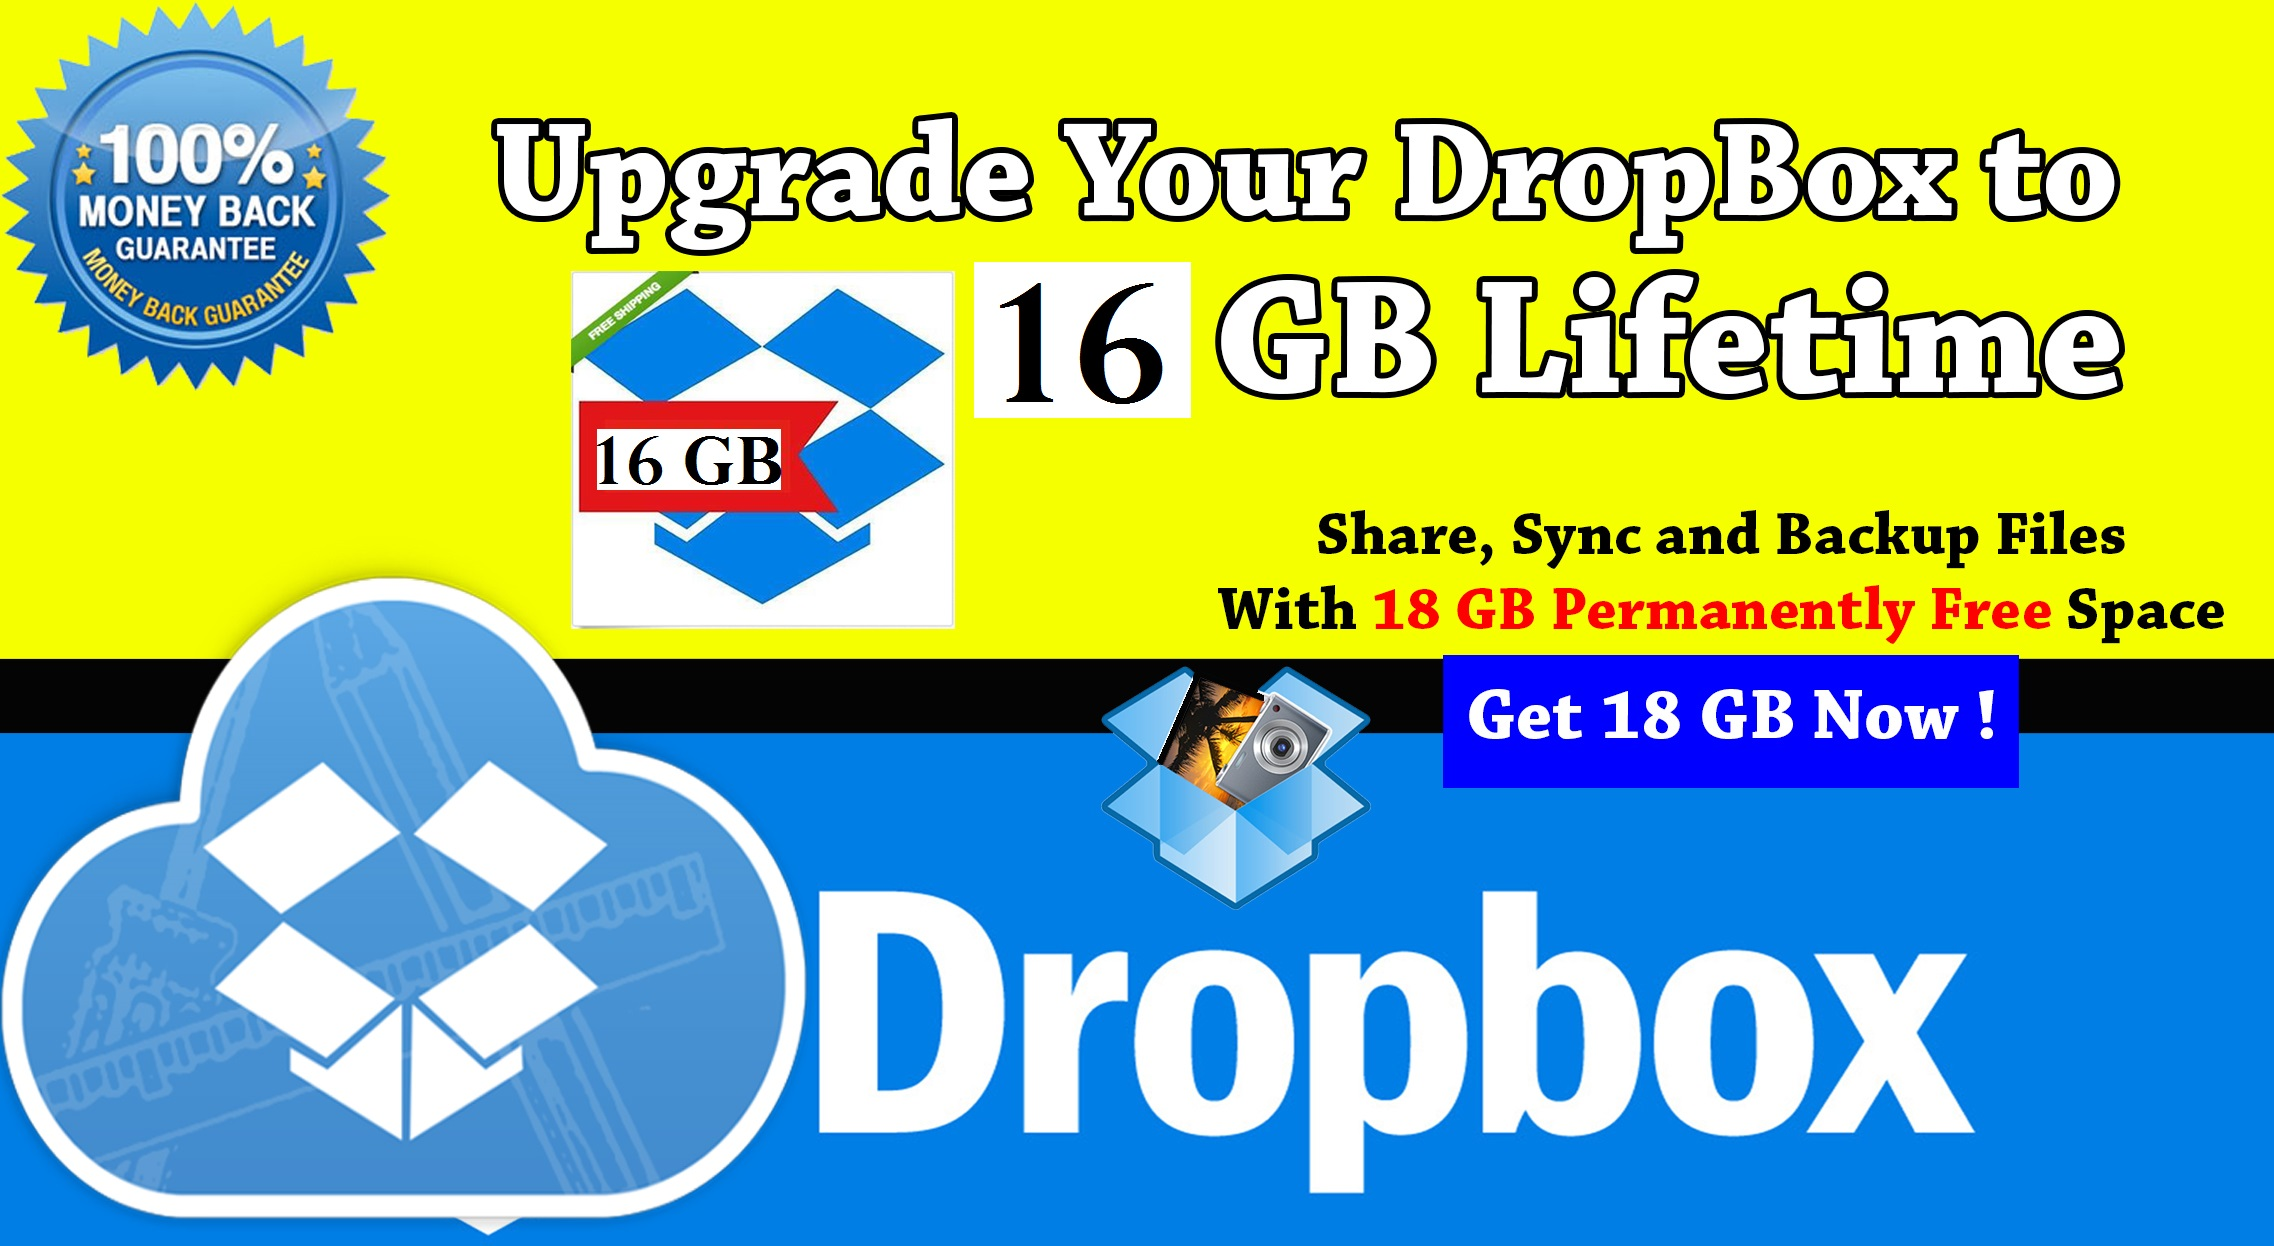 upgrade your dropbox storage up to 16 GB